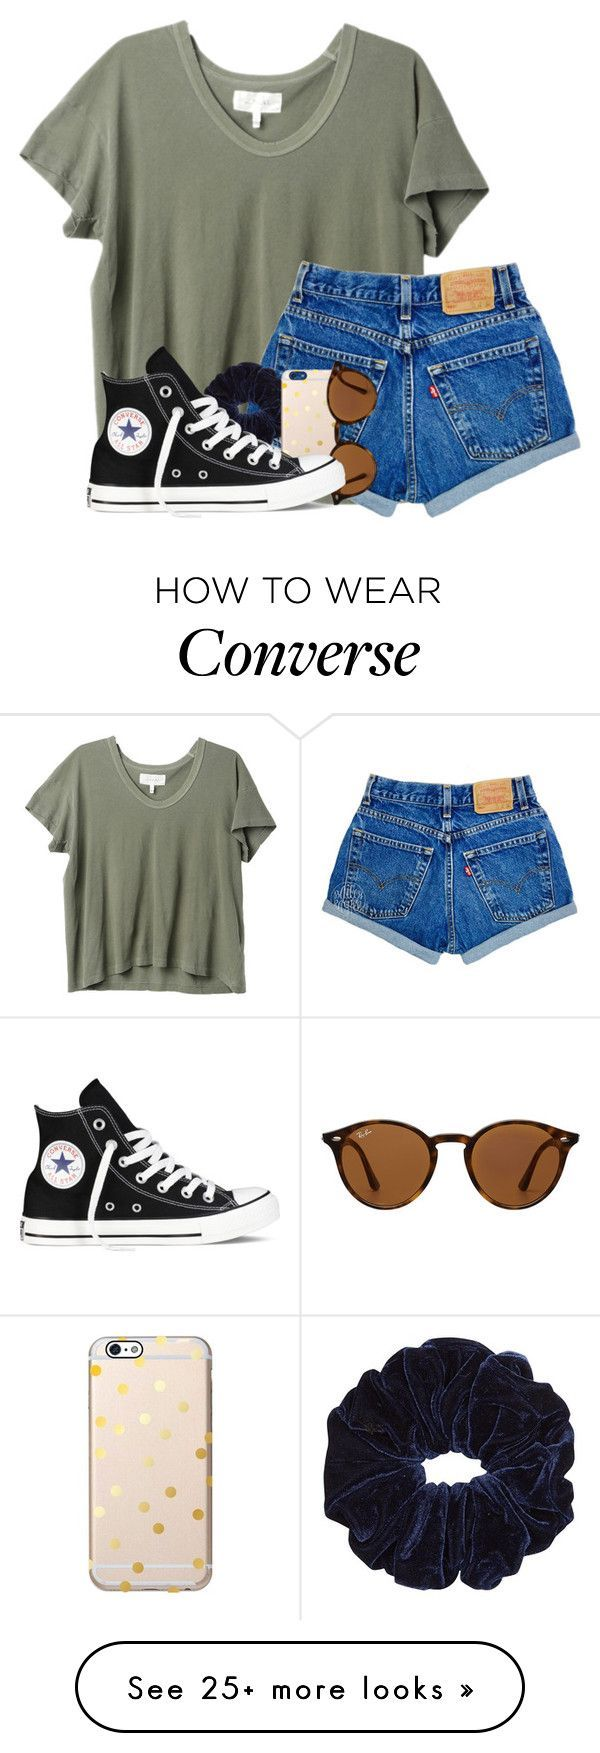 """HELP SHOULD I TAKE FRENCH OR SPANISH"" by madiweeksss on Polyvore featuring The Great, Ray-Ban and Converse"